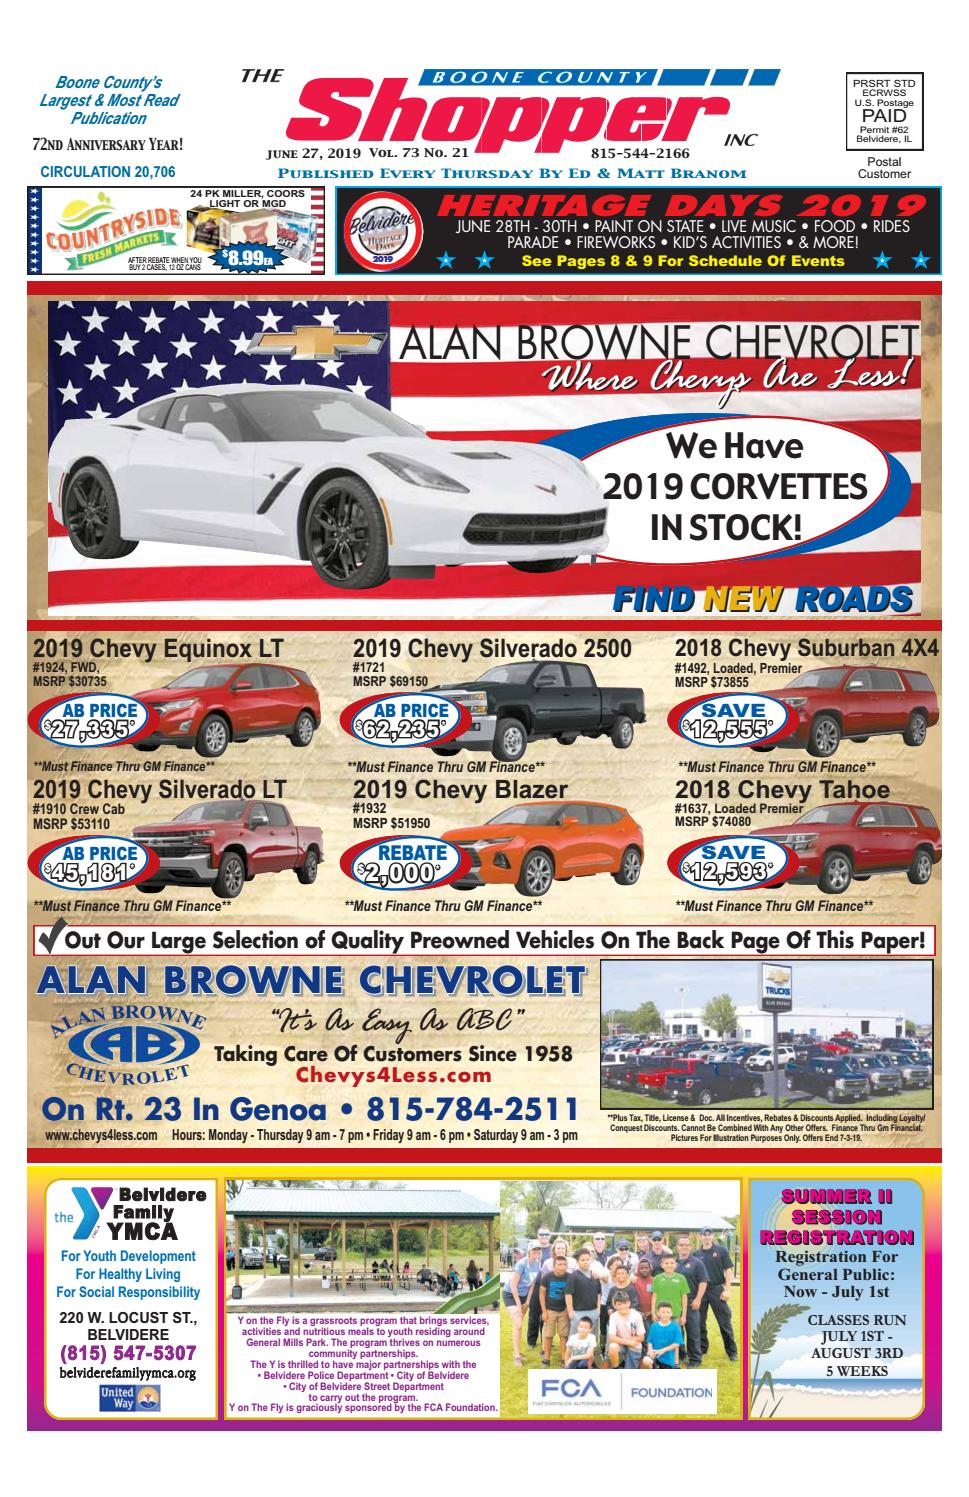 Boone County Shopper June 27, 2019 by Boone County Shopper